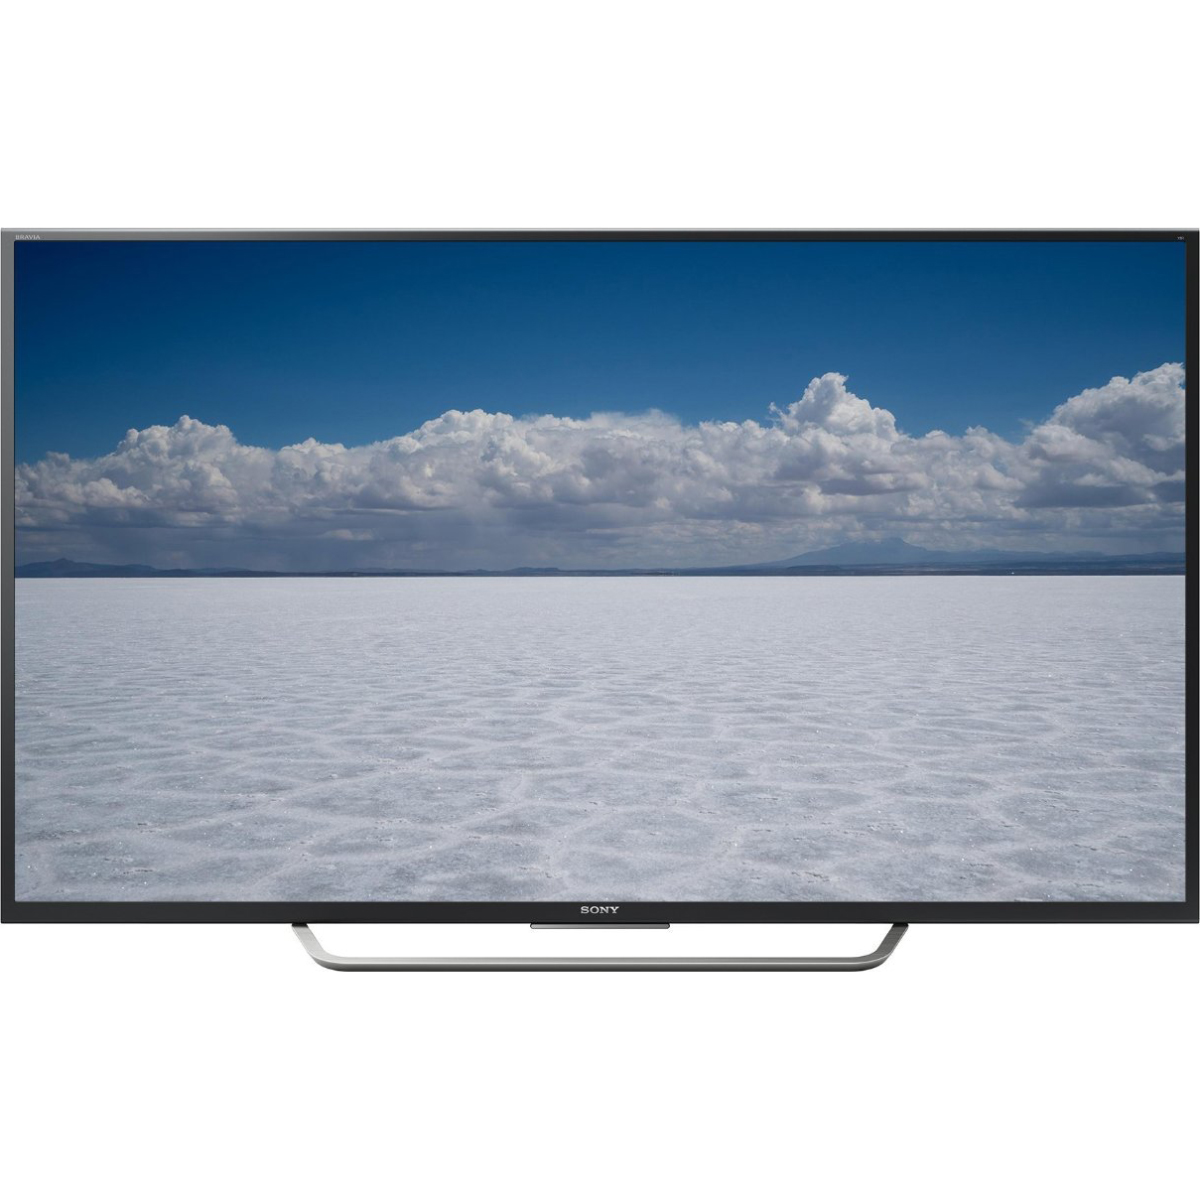 "Sony XBR55X700D 55"" 4K Ultra HD 2160p 60Hz LED Smart HDTV..."